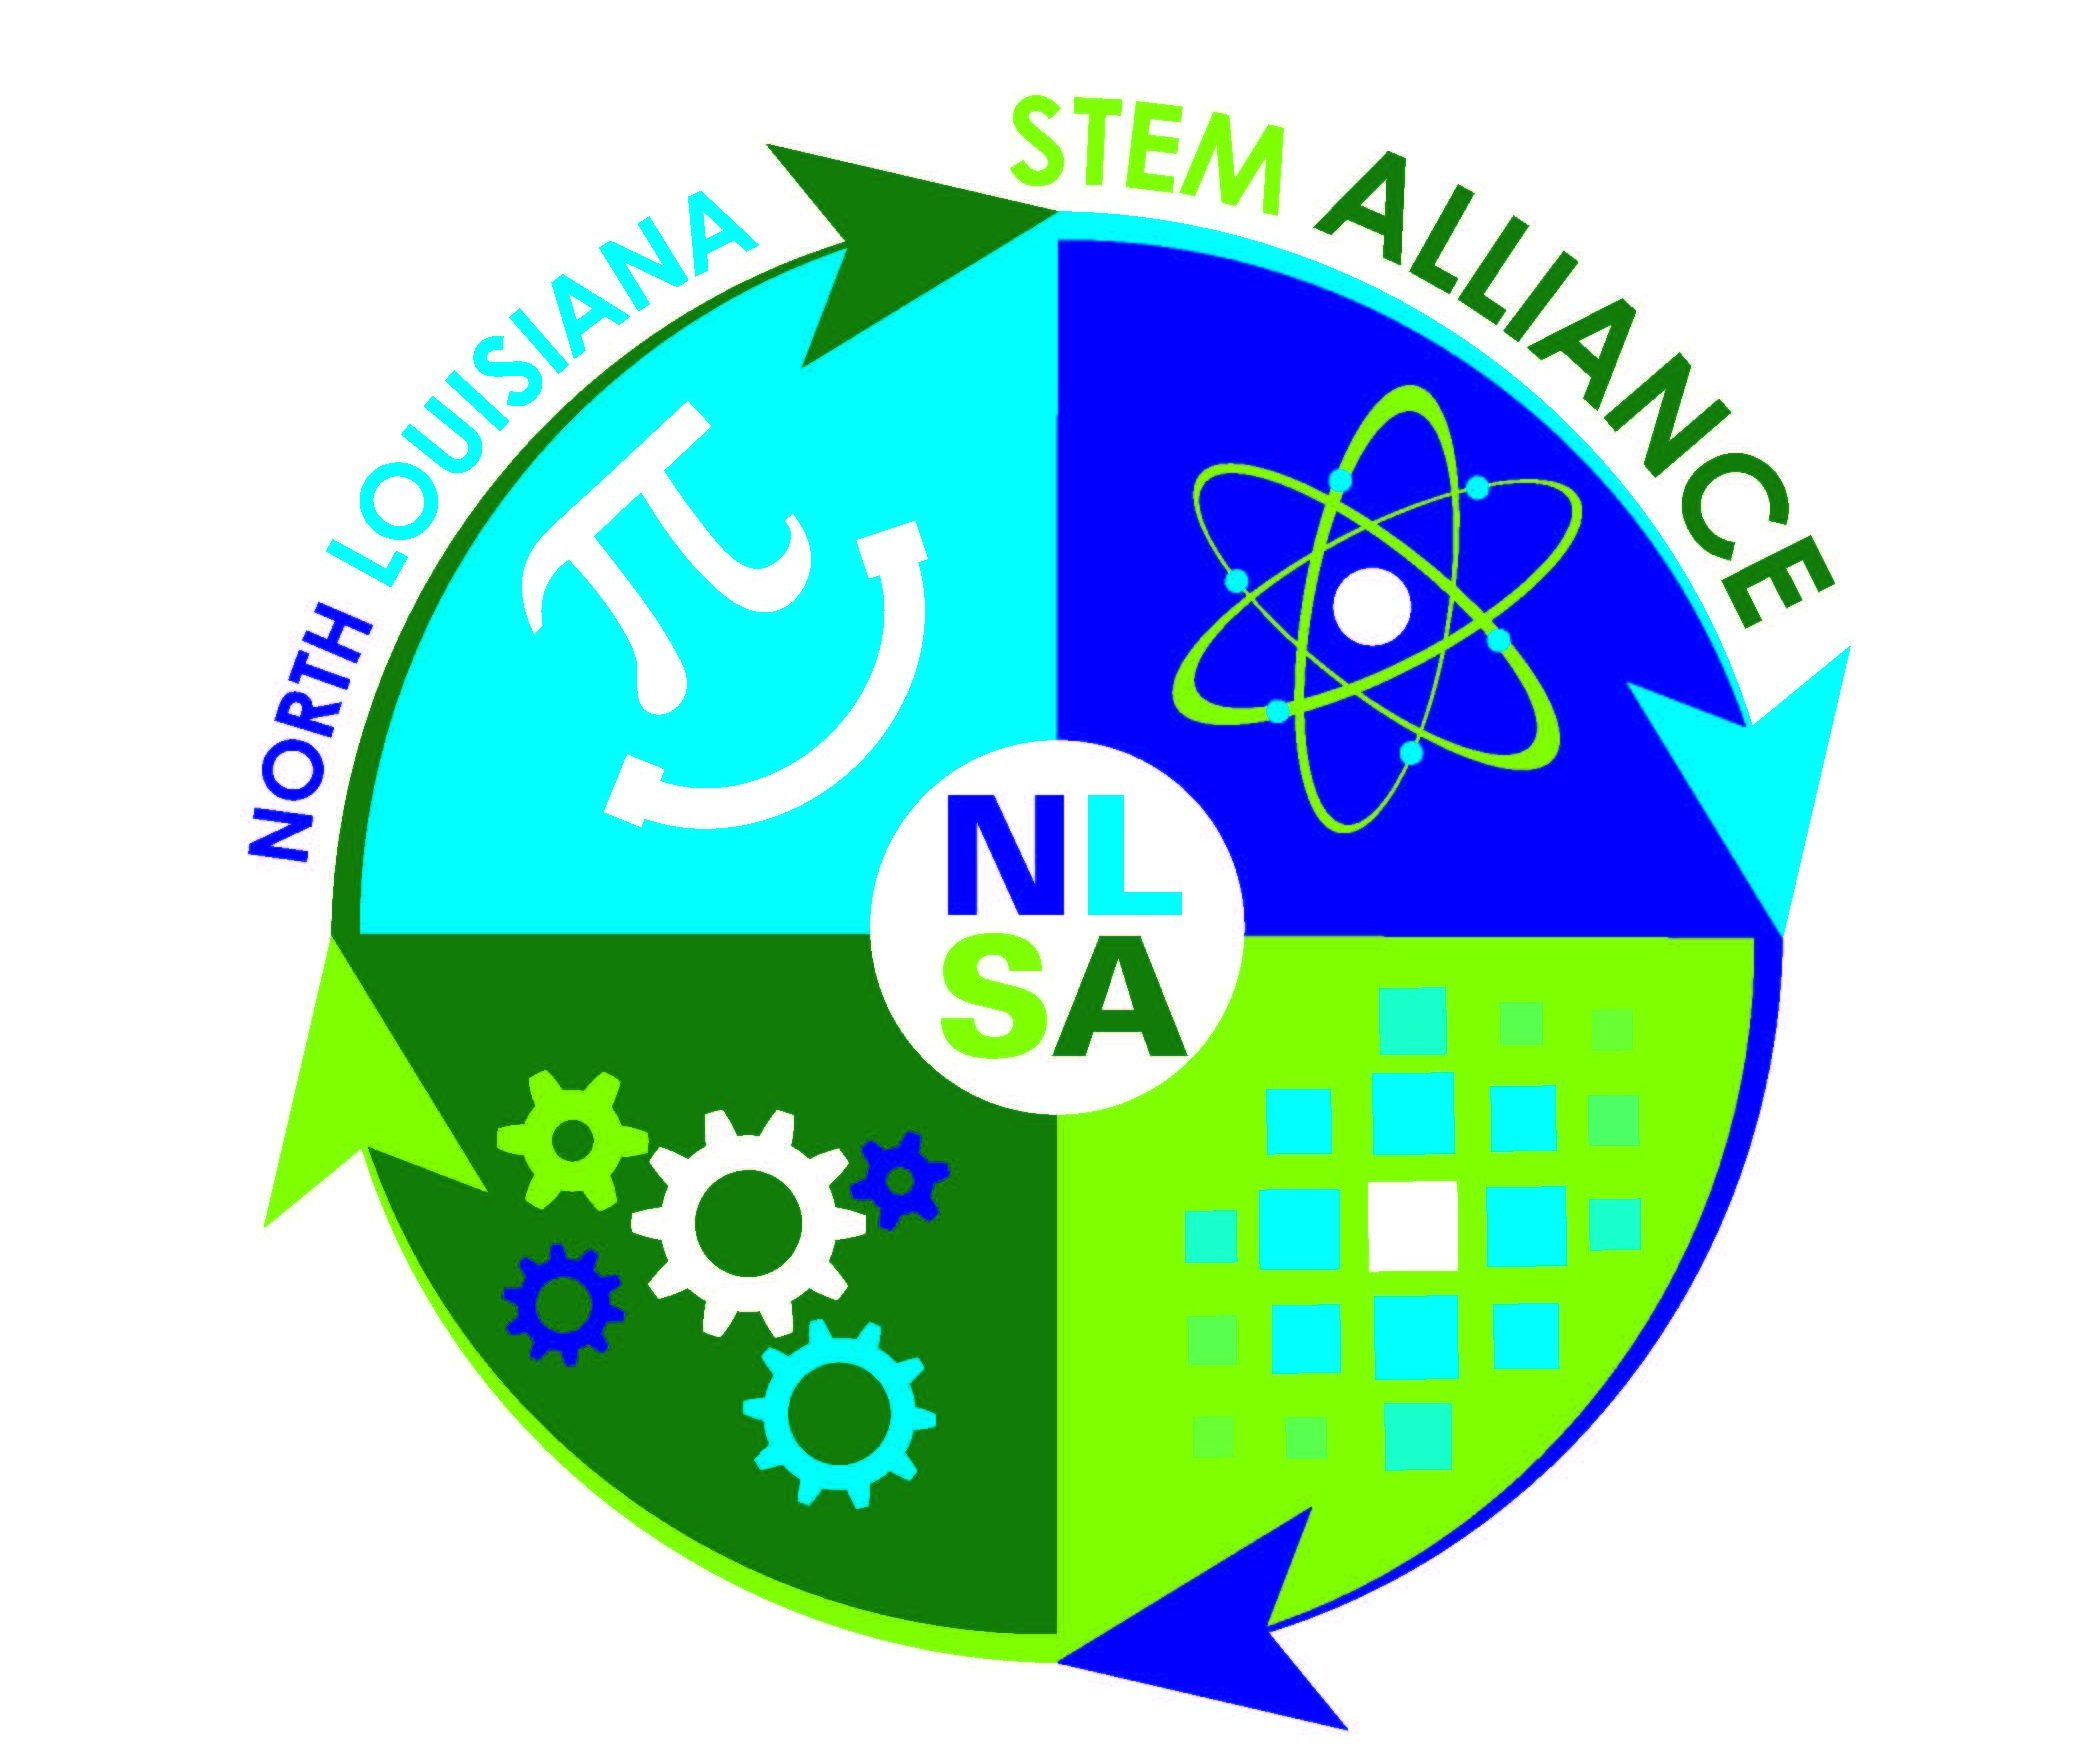 NLA STEM ALLIANCE